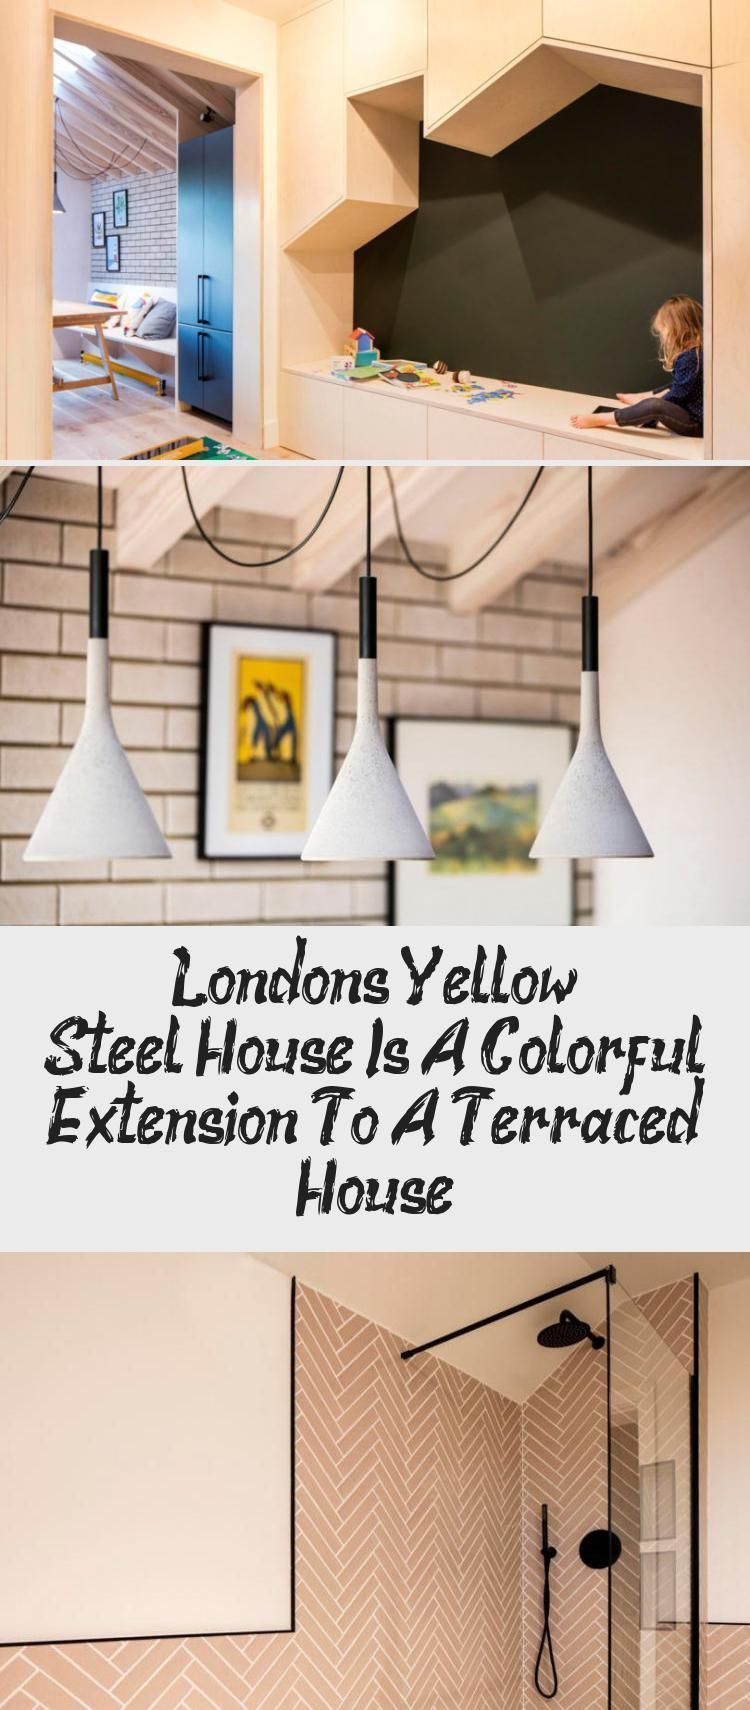 London's Yellow Steel House Is A Colorful Extension To A Terraced House - Lesl...-#Colorful #extension #House #Lesl #Londons #steel #terraced #Yellow-London's Yellow Steel House Is A Colorful Extension To A Terraced House – Leslie's Blog- A house that incorporates bold yellow steel beams, wood rafters, and plywood enclosures for a cheery, contemporary feel.  #ArchitecturePhotography #ResidentialArchitecture  Informations About London's Yellow Steel House Is A Colorful Extension To A Terraced Ho